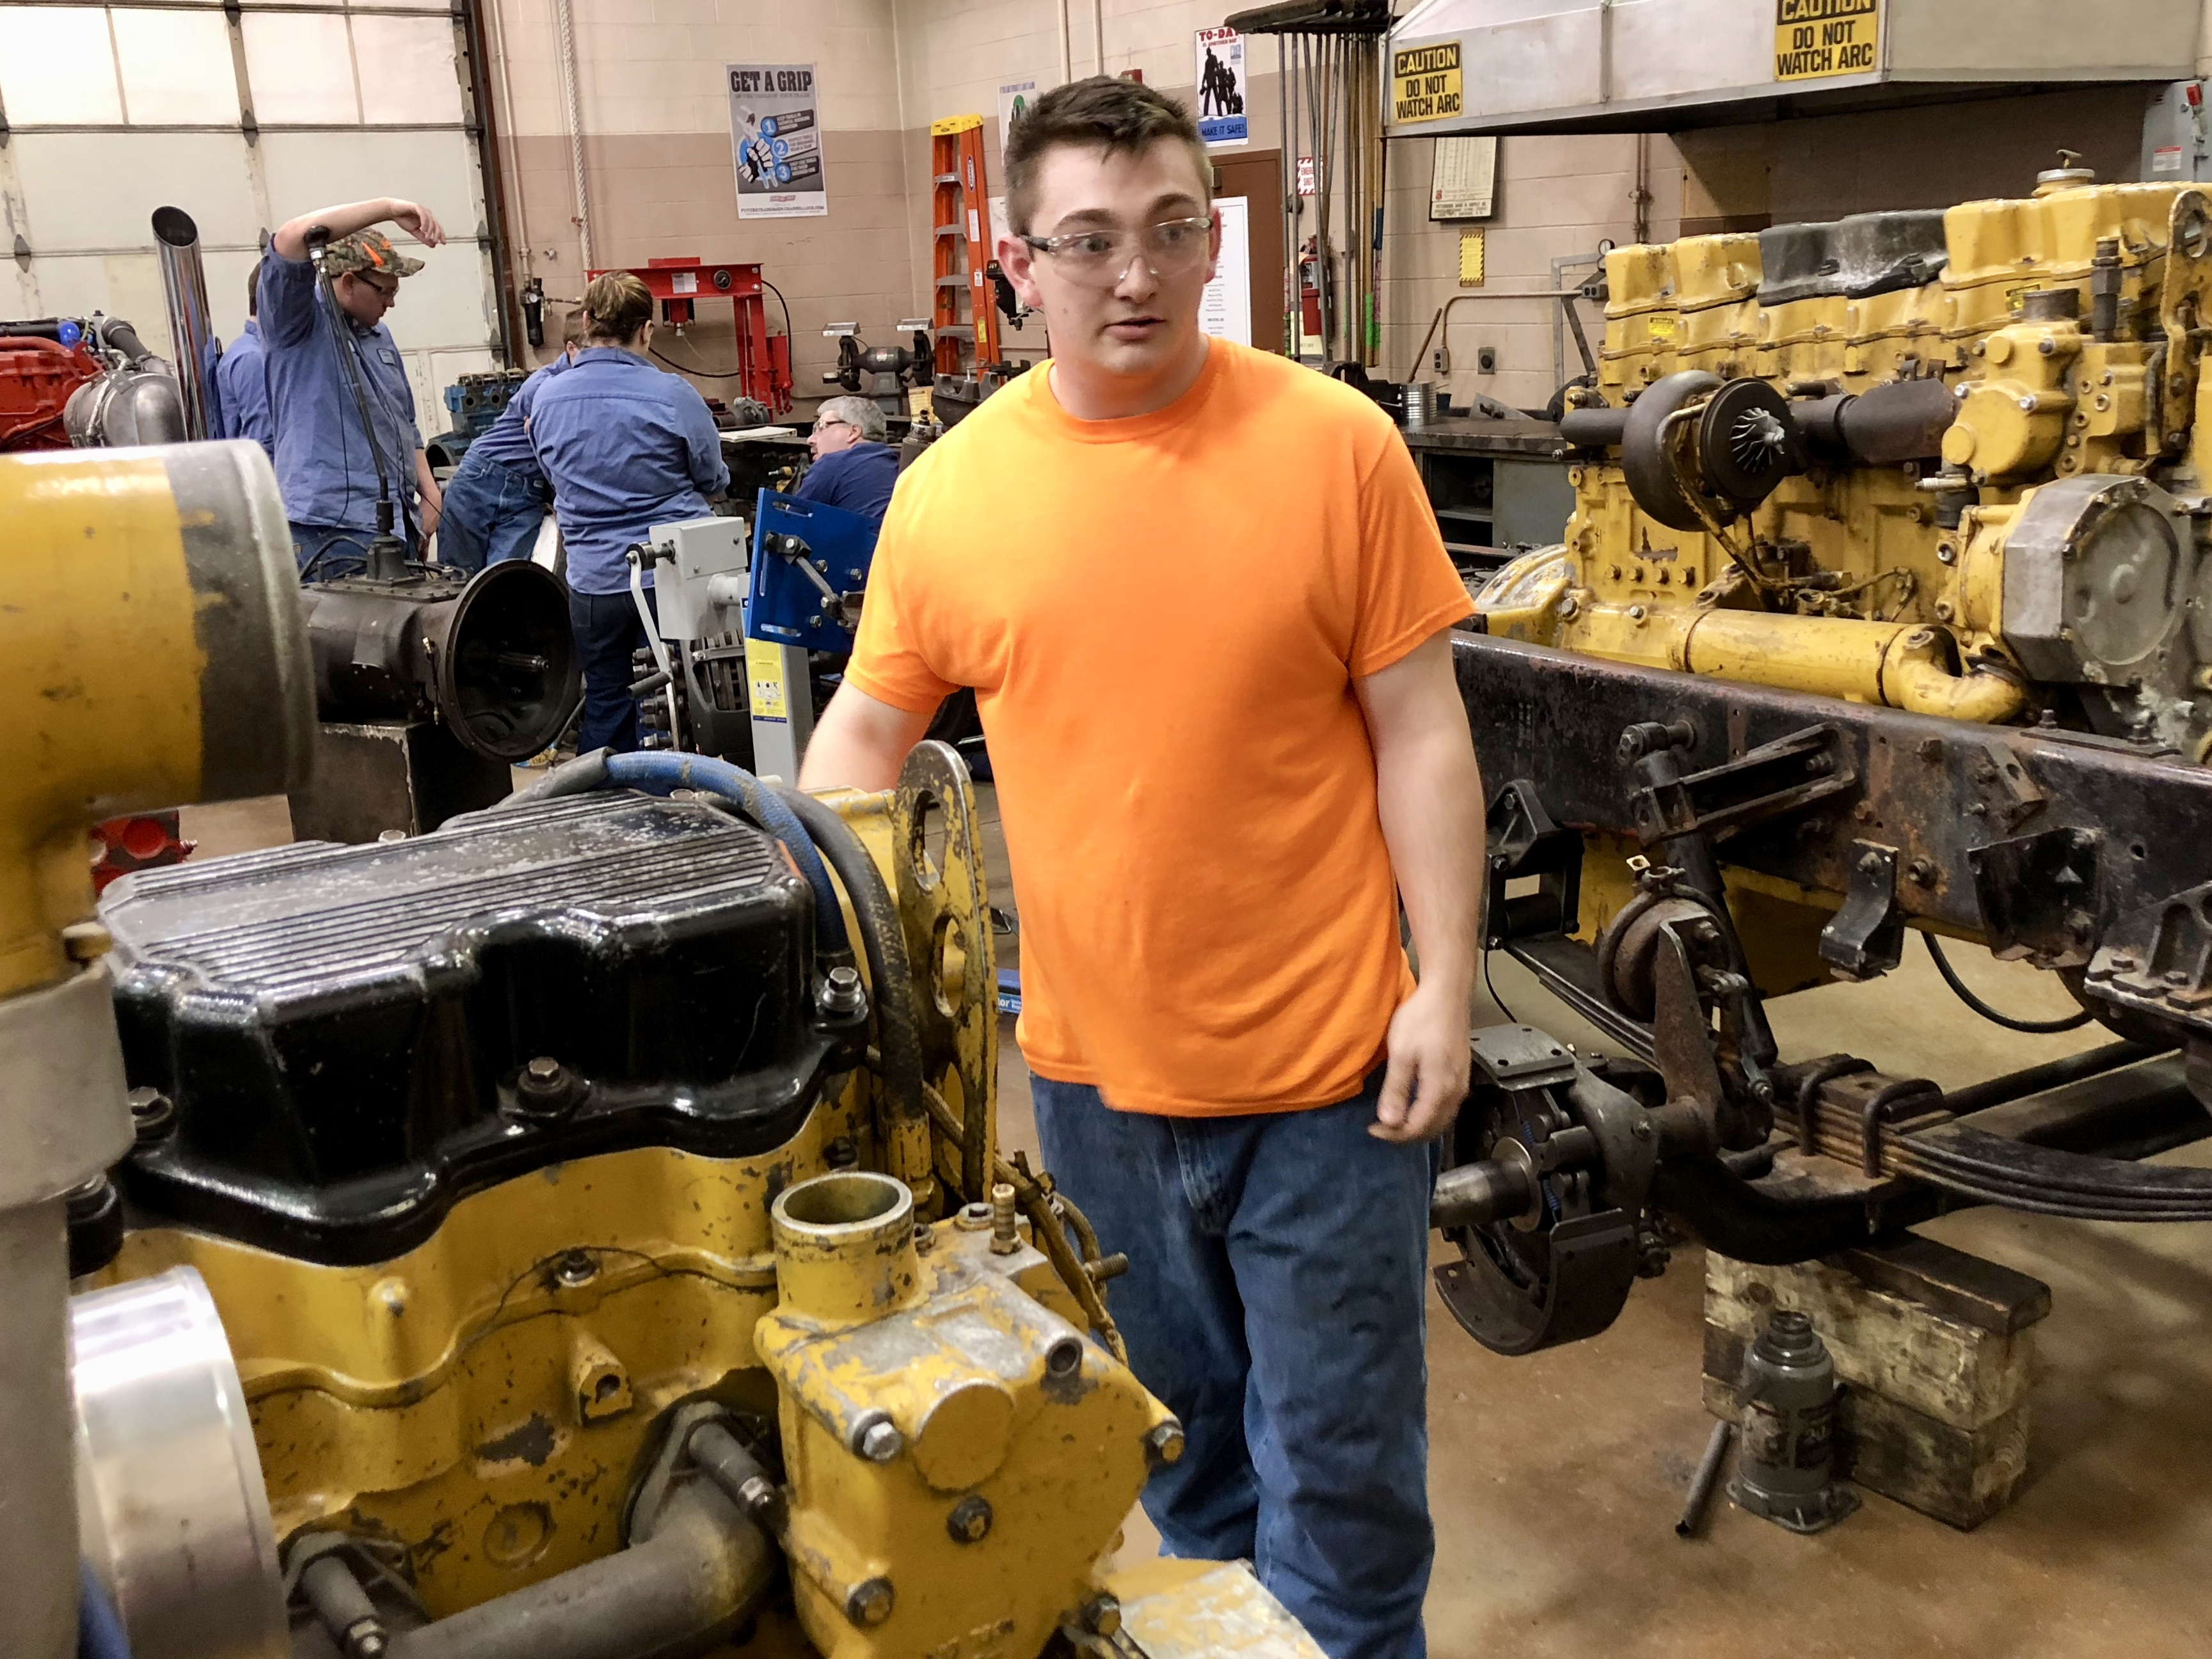 Career Technical Education Schools Can Have Higher Graduation Rates